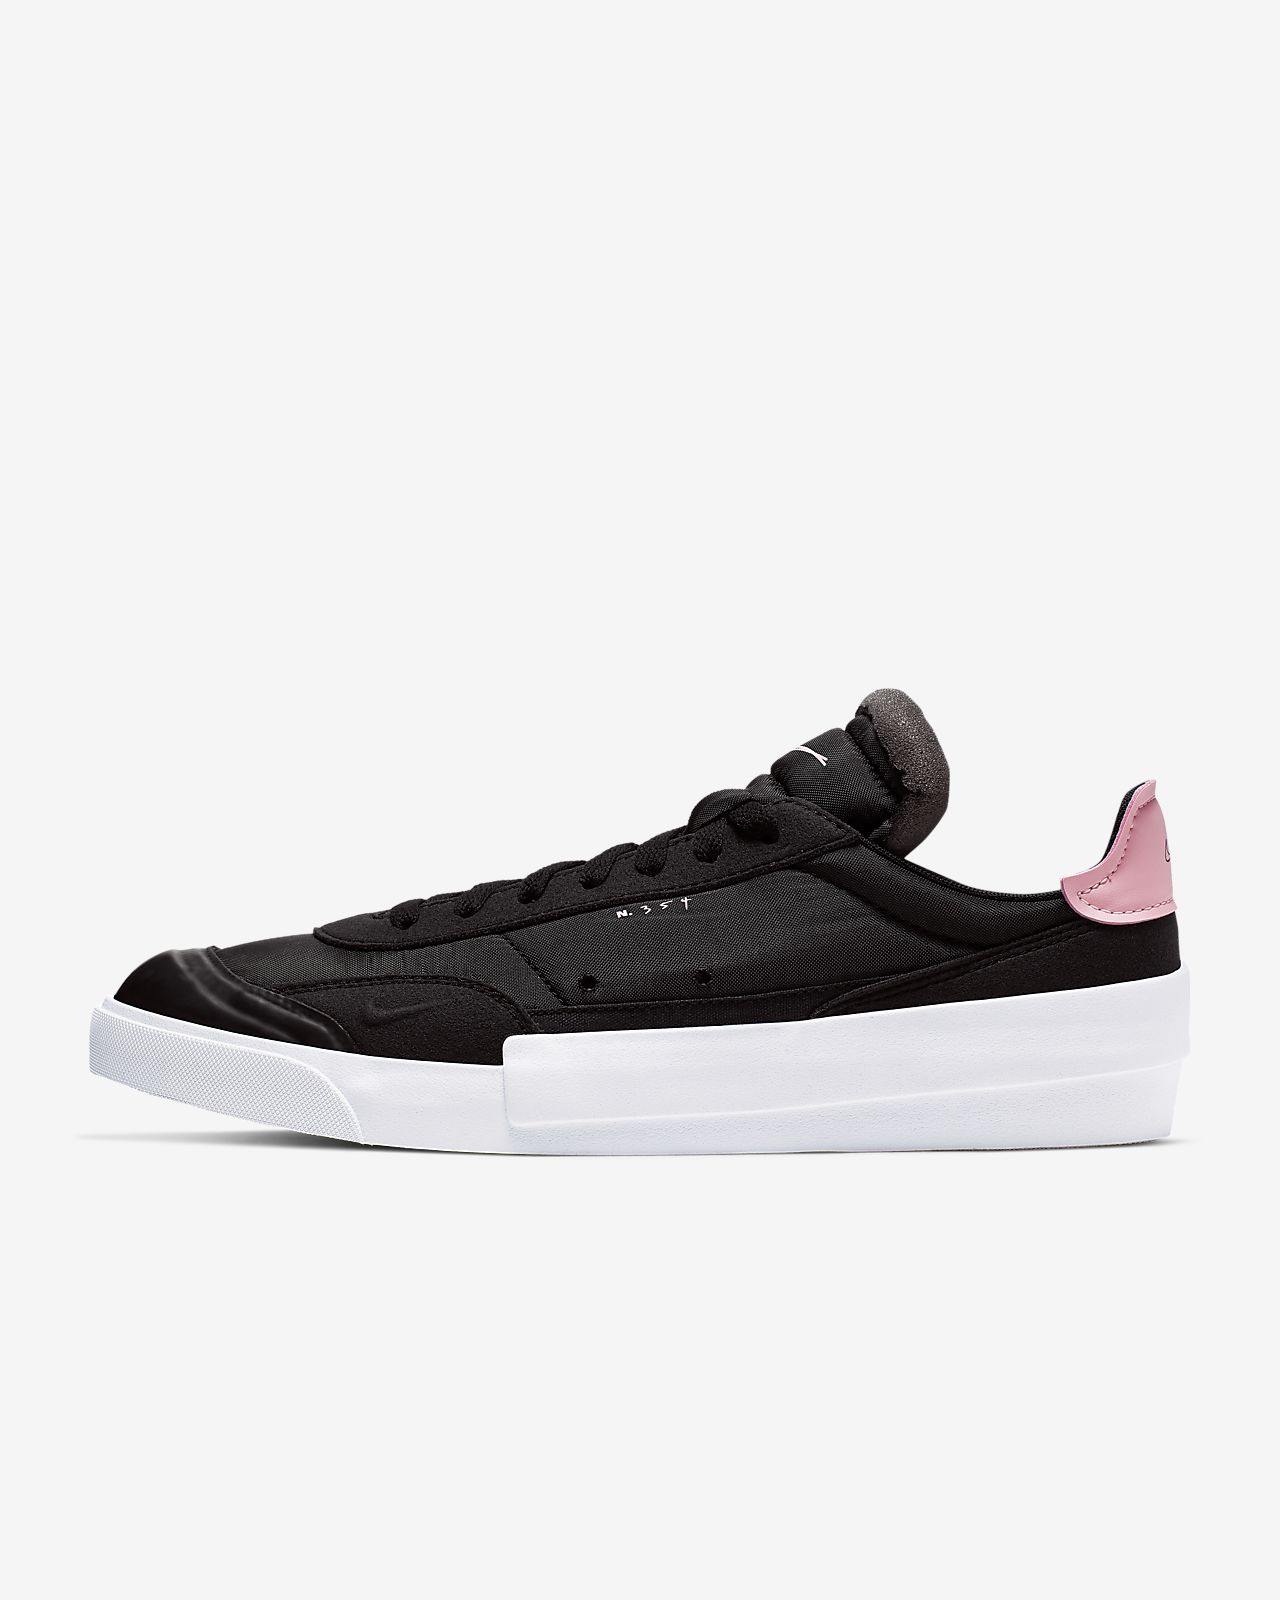 Chaussure Nike Drop Type LX pour Homme